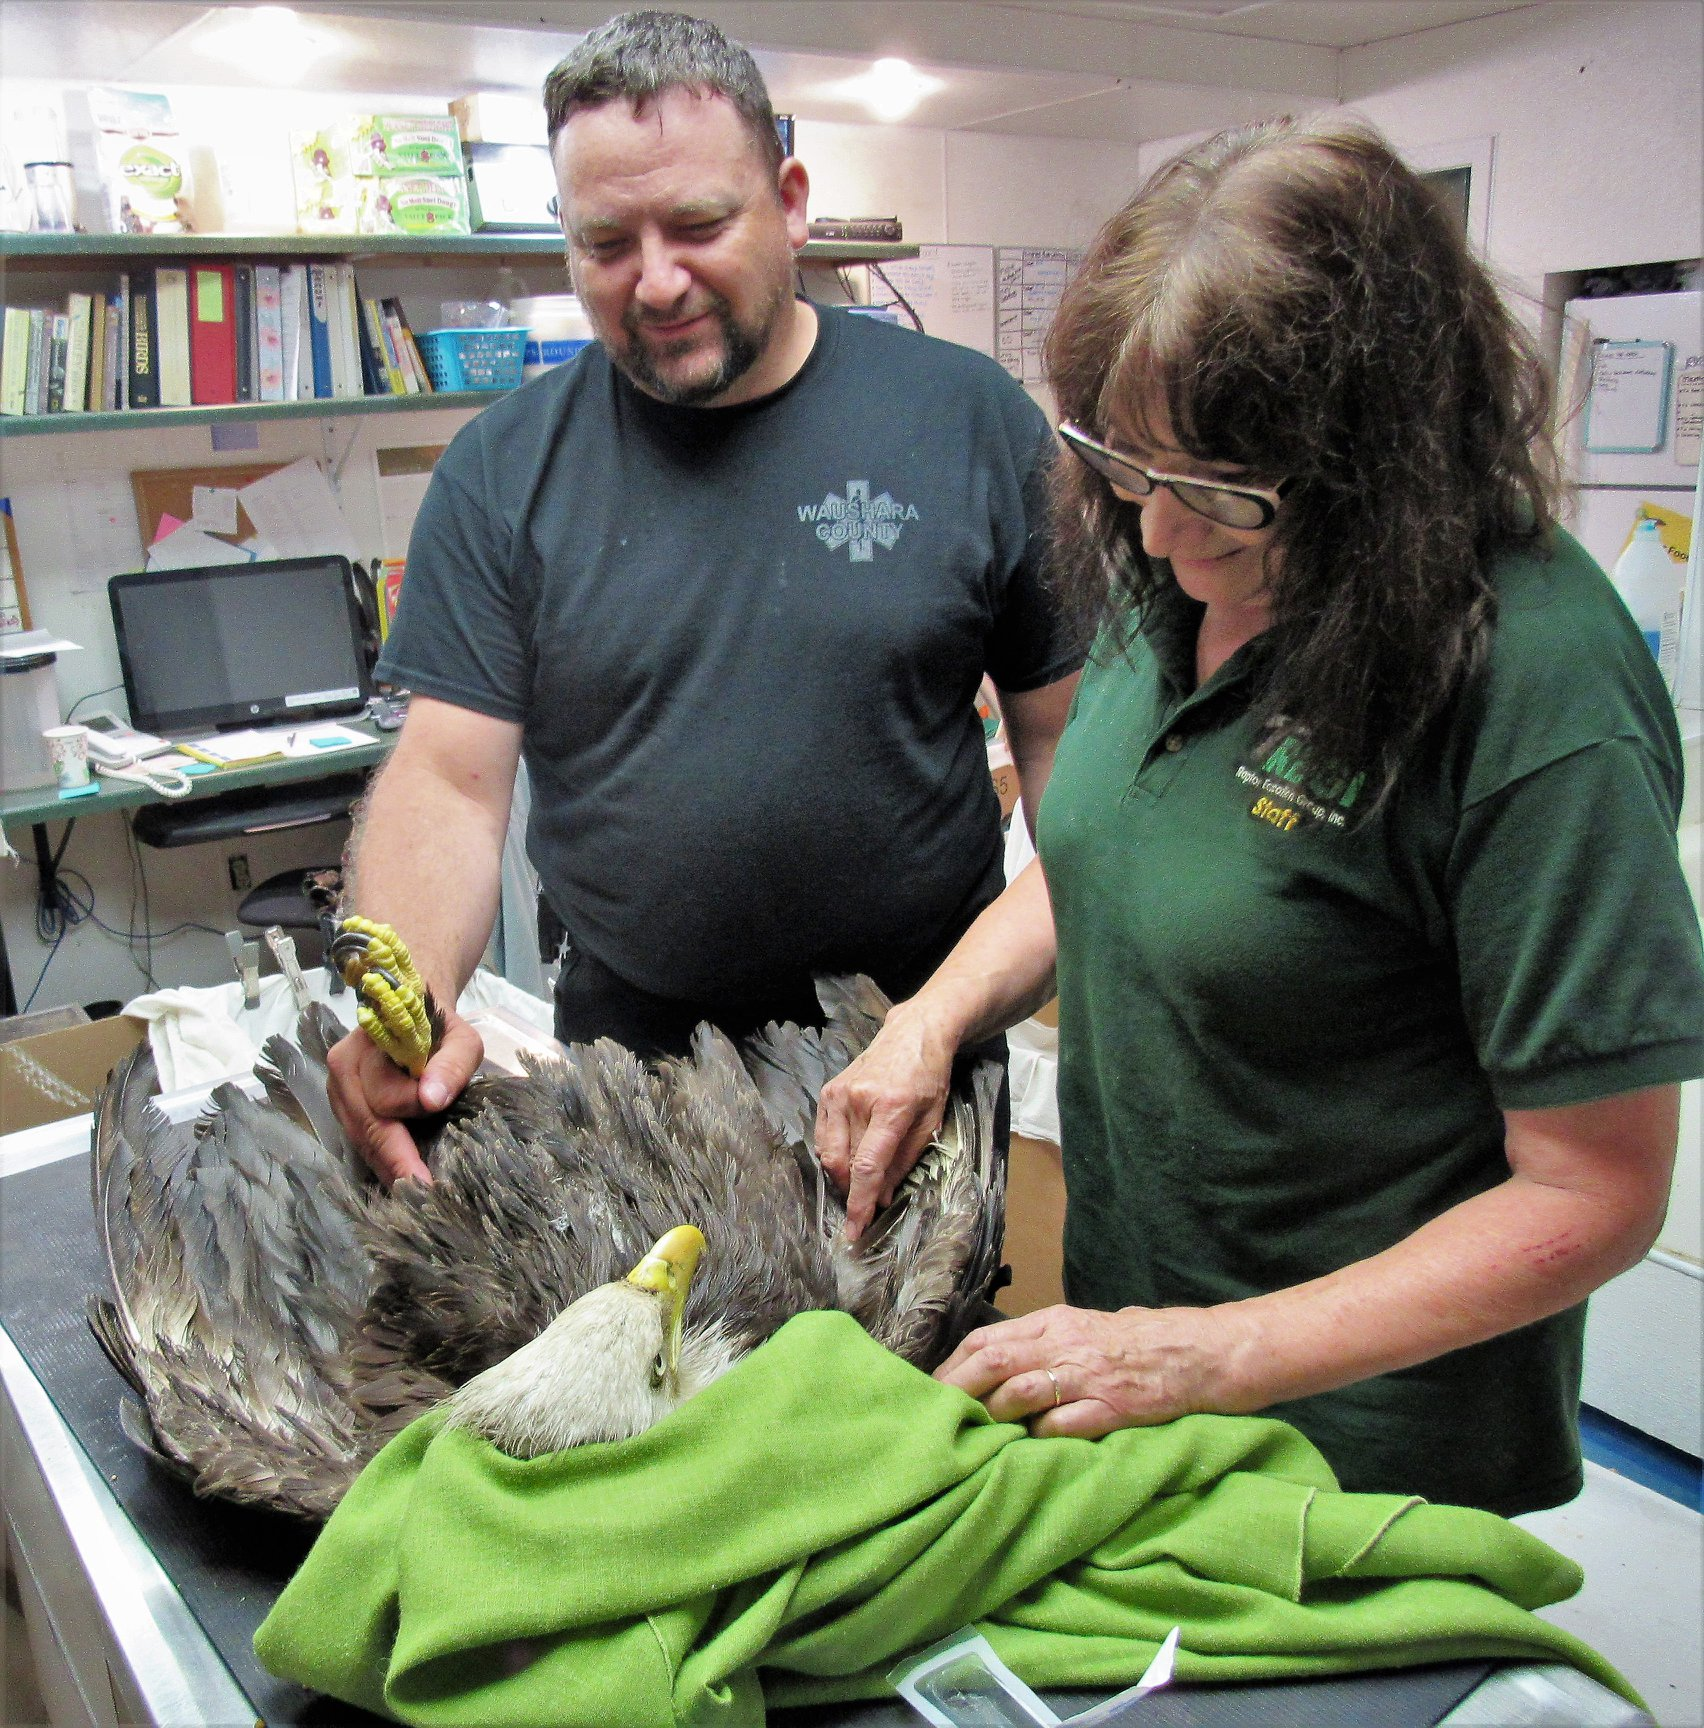 Dan Miller delivered the Bald eagle to the REGI clinic and helped hold the bird so I could examine him.